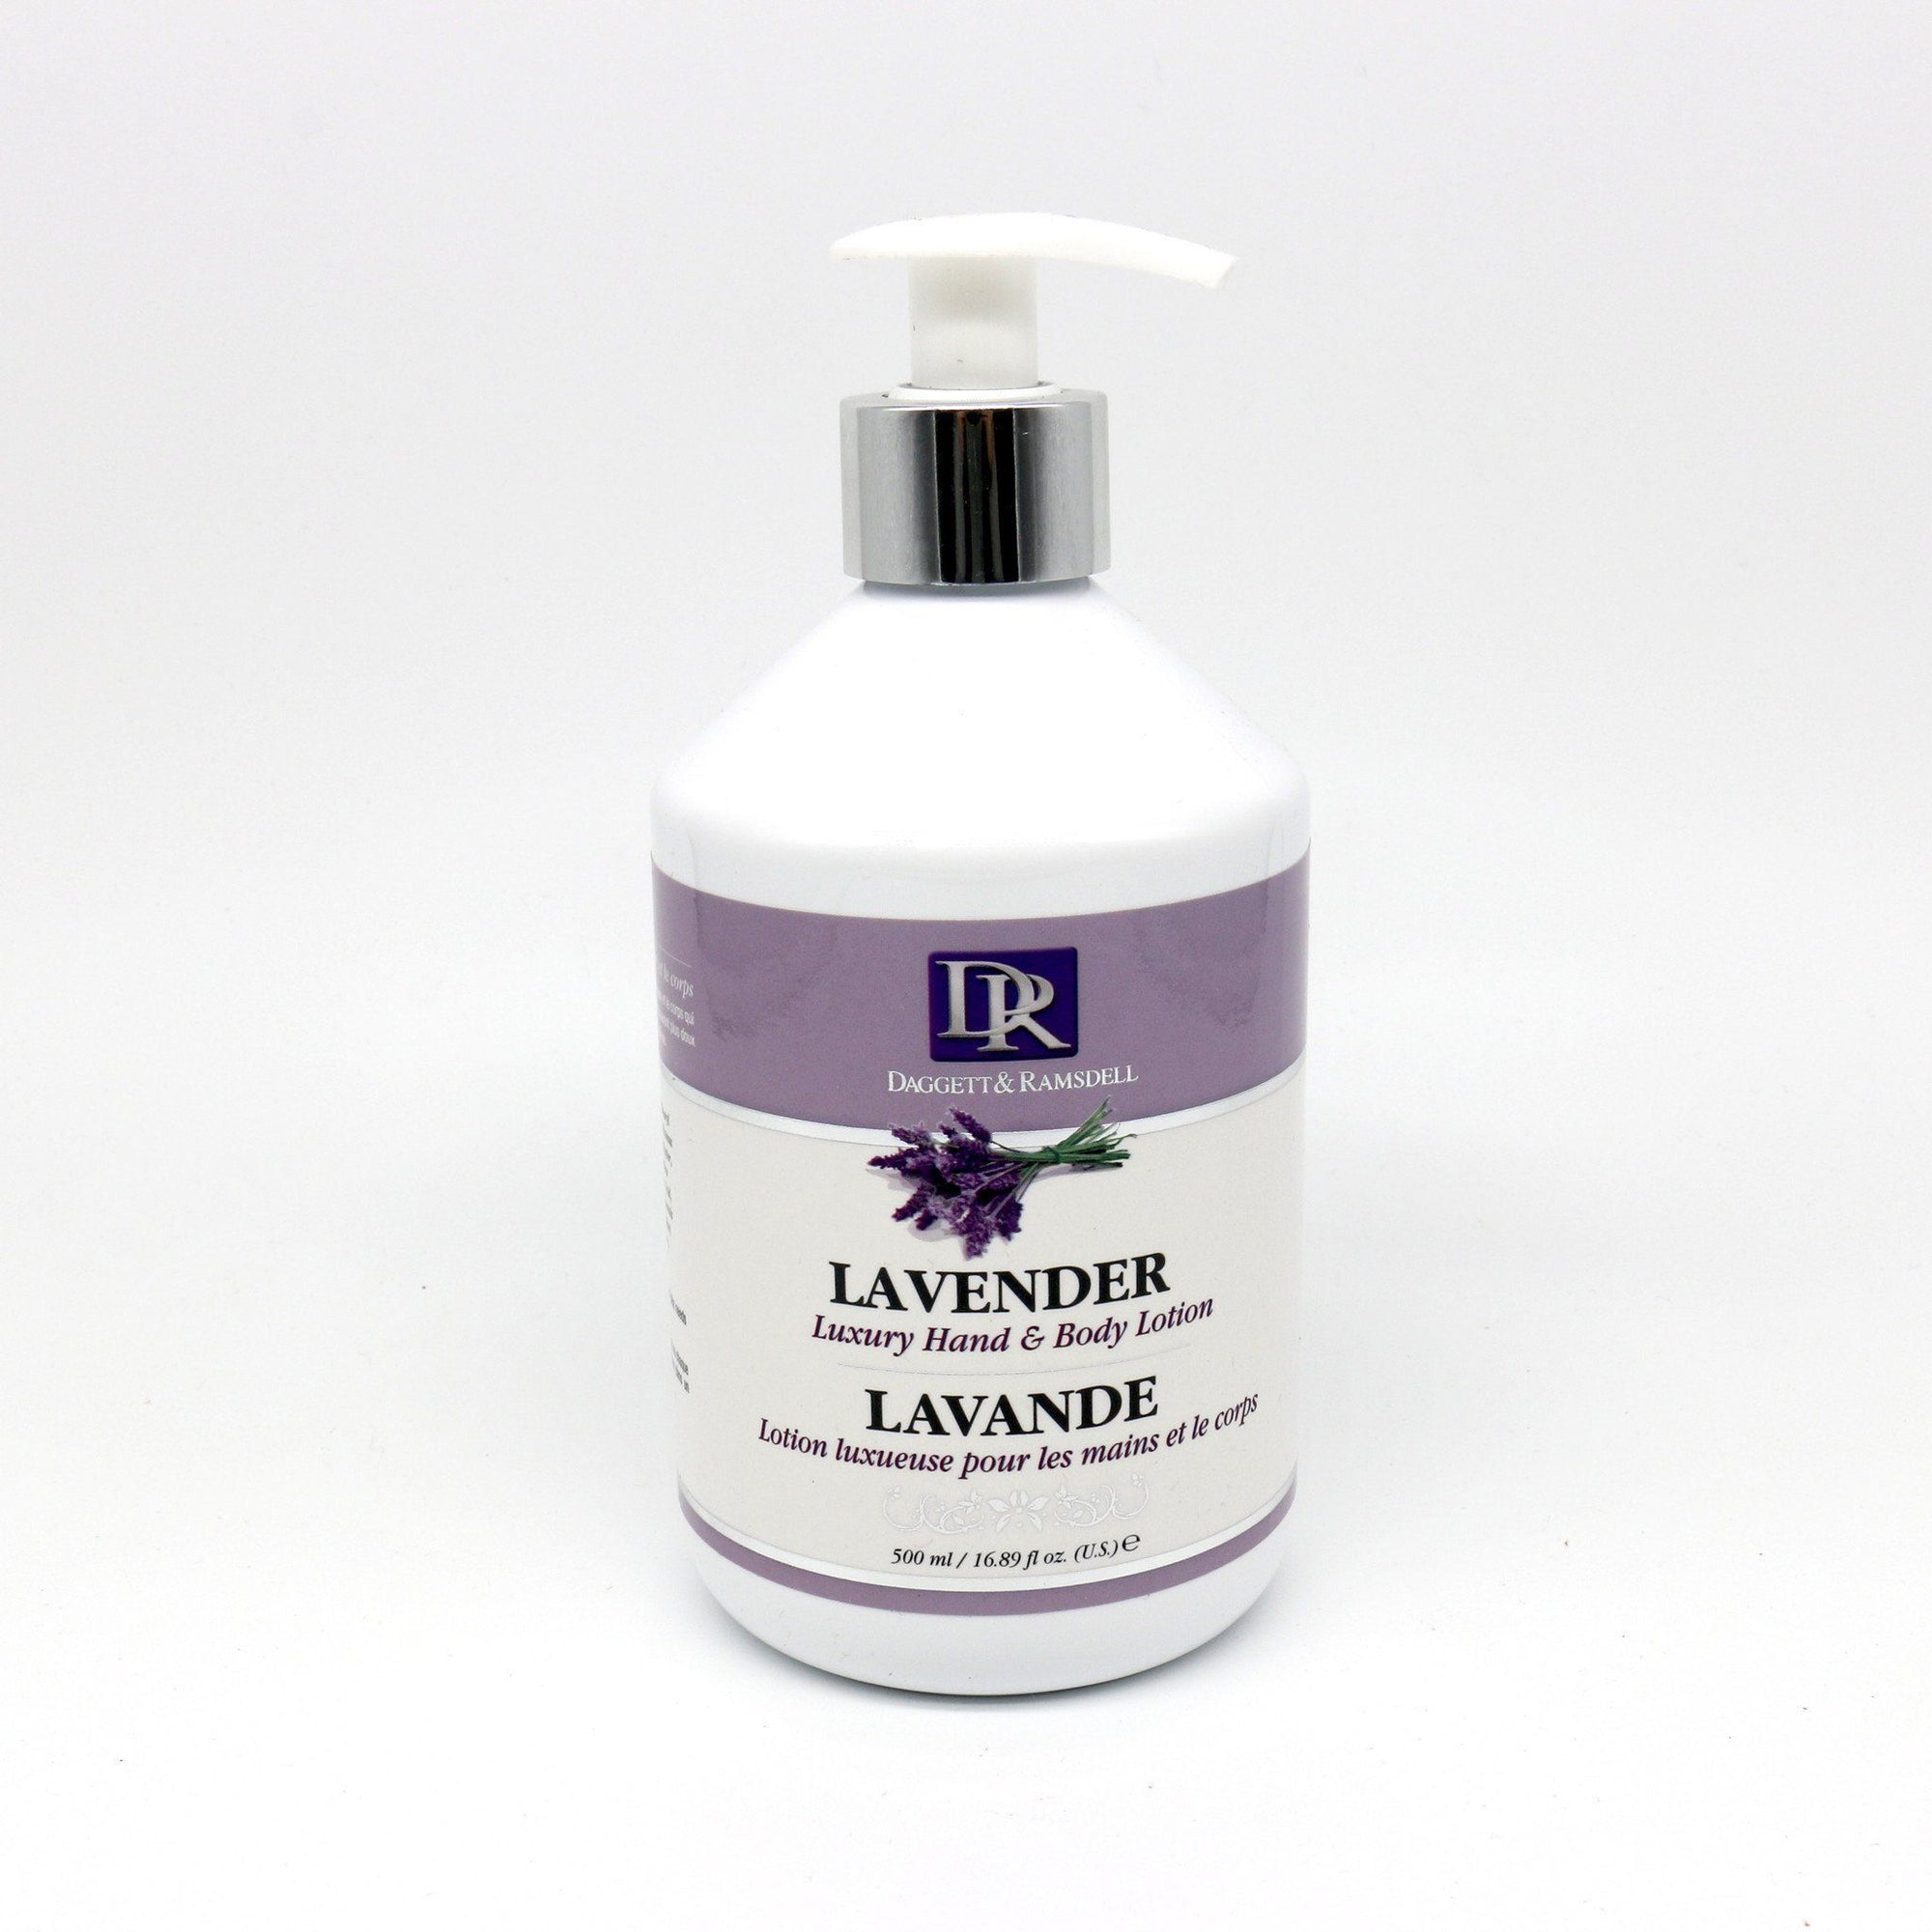 Daggett & Ramsdell Luxury Hand & Body Lotion, Lavender